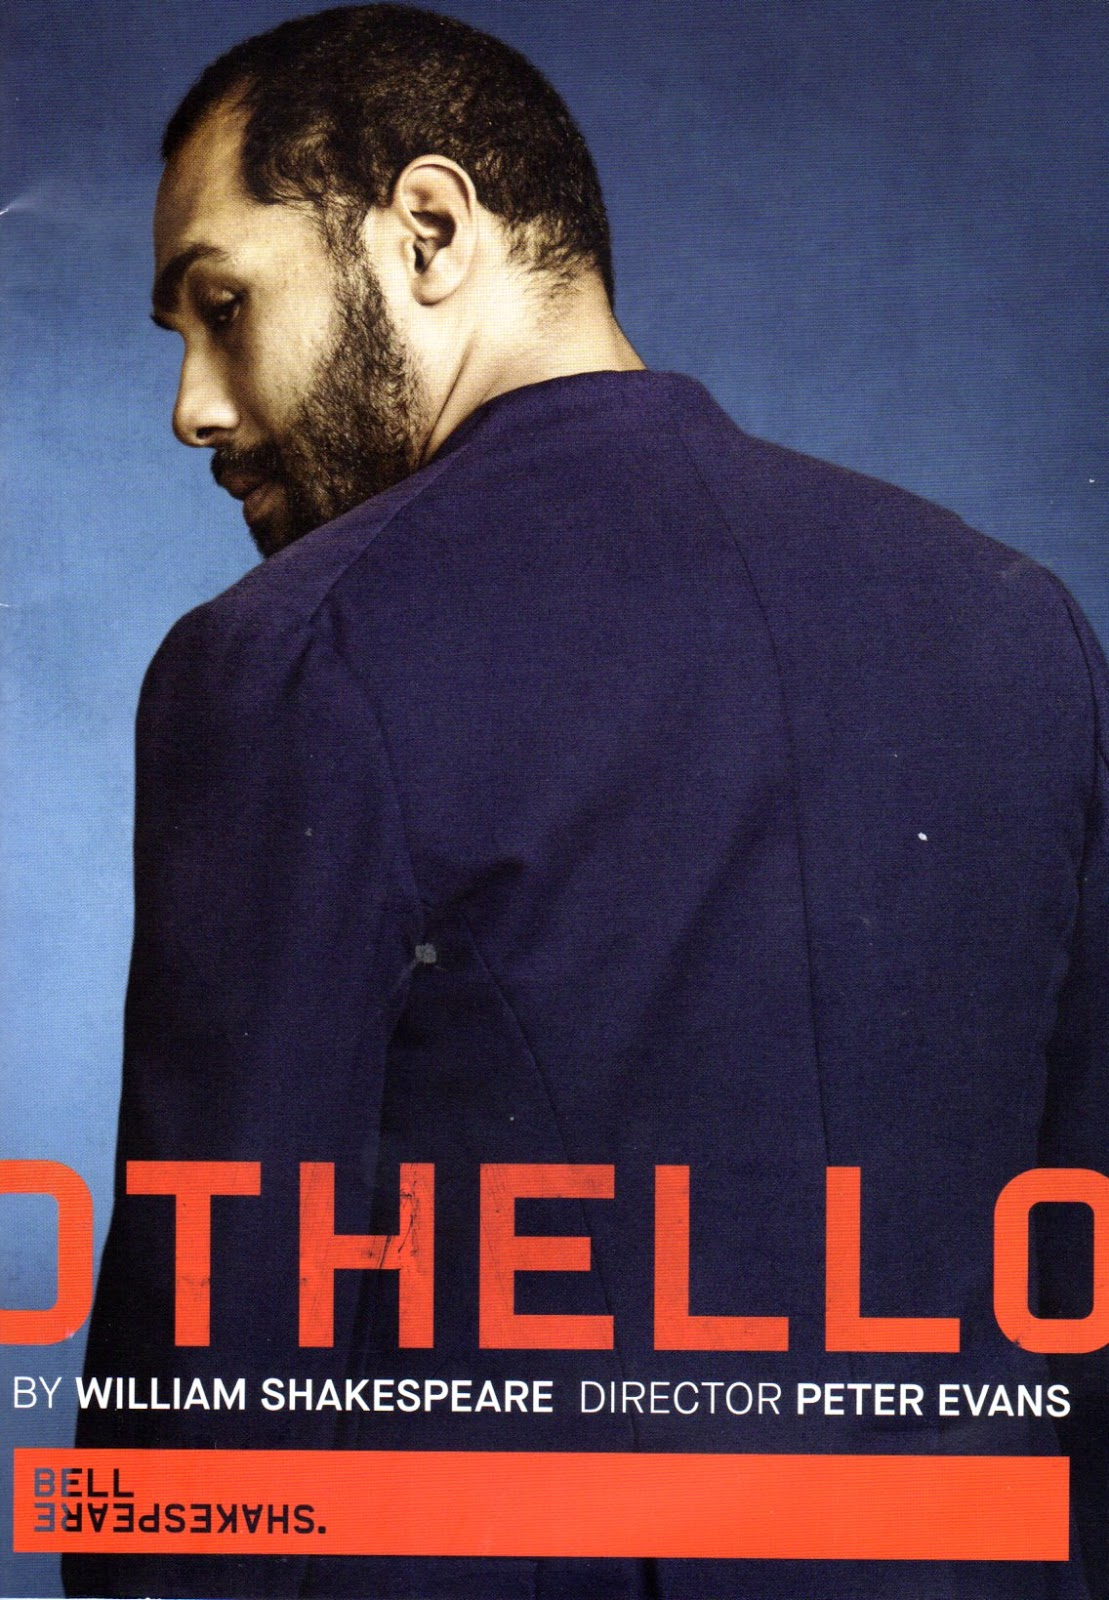 racism essays othello How is othello's race a factor in the play othello ascends to the rank of the venetian military, a city - much like elizabethan england when the play was written - rife with racism a general in the army, othello holds a distinguished place in the duke's court due to his victories in battle, but.